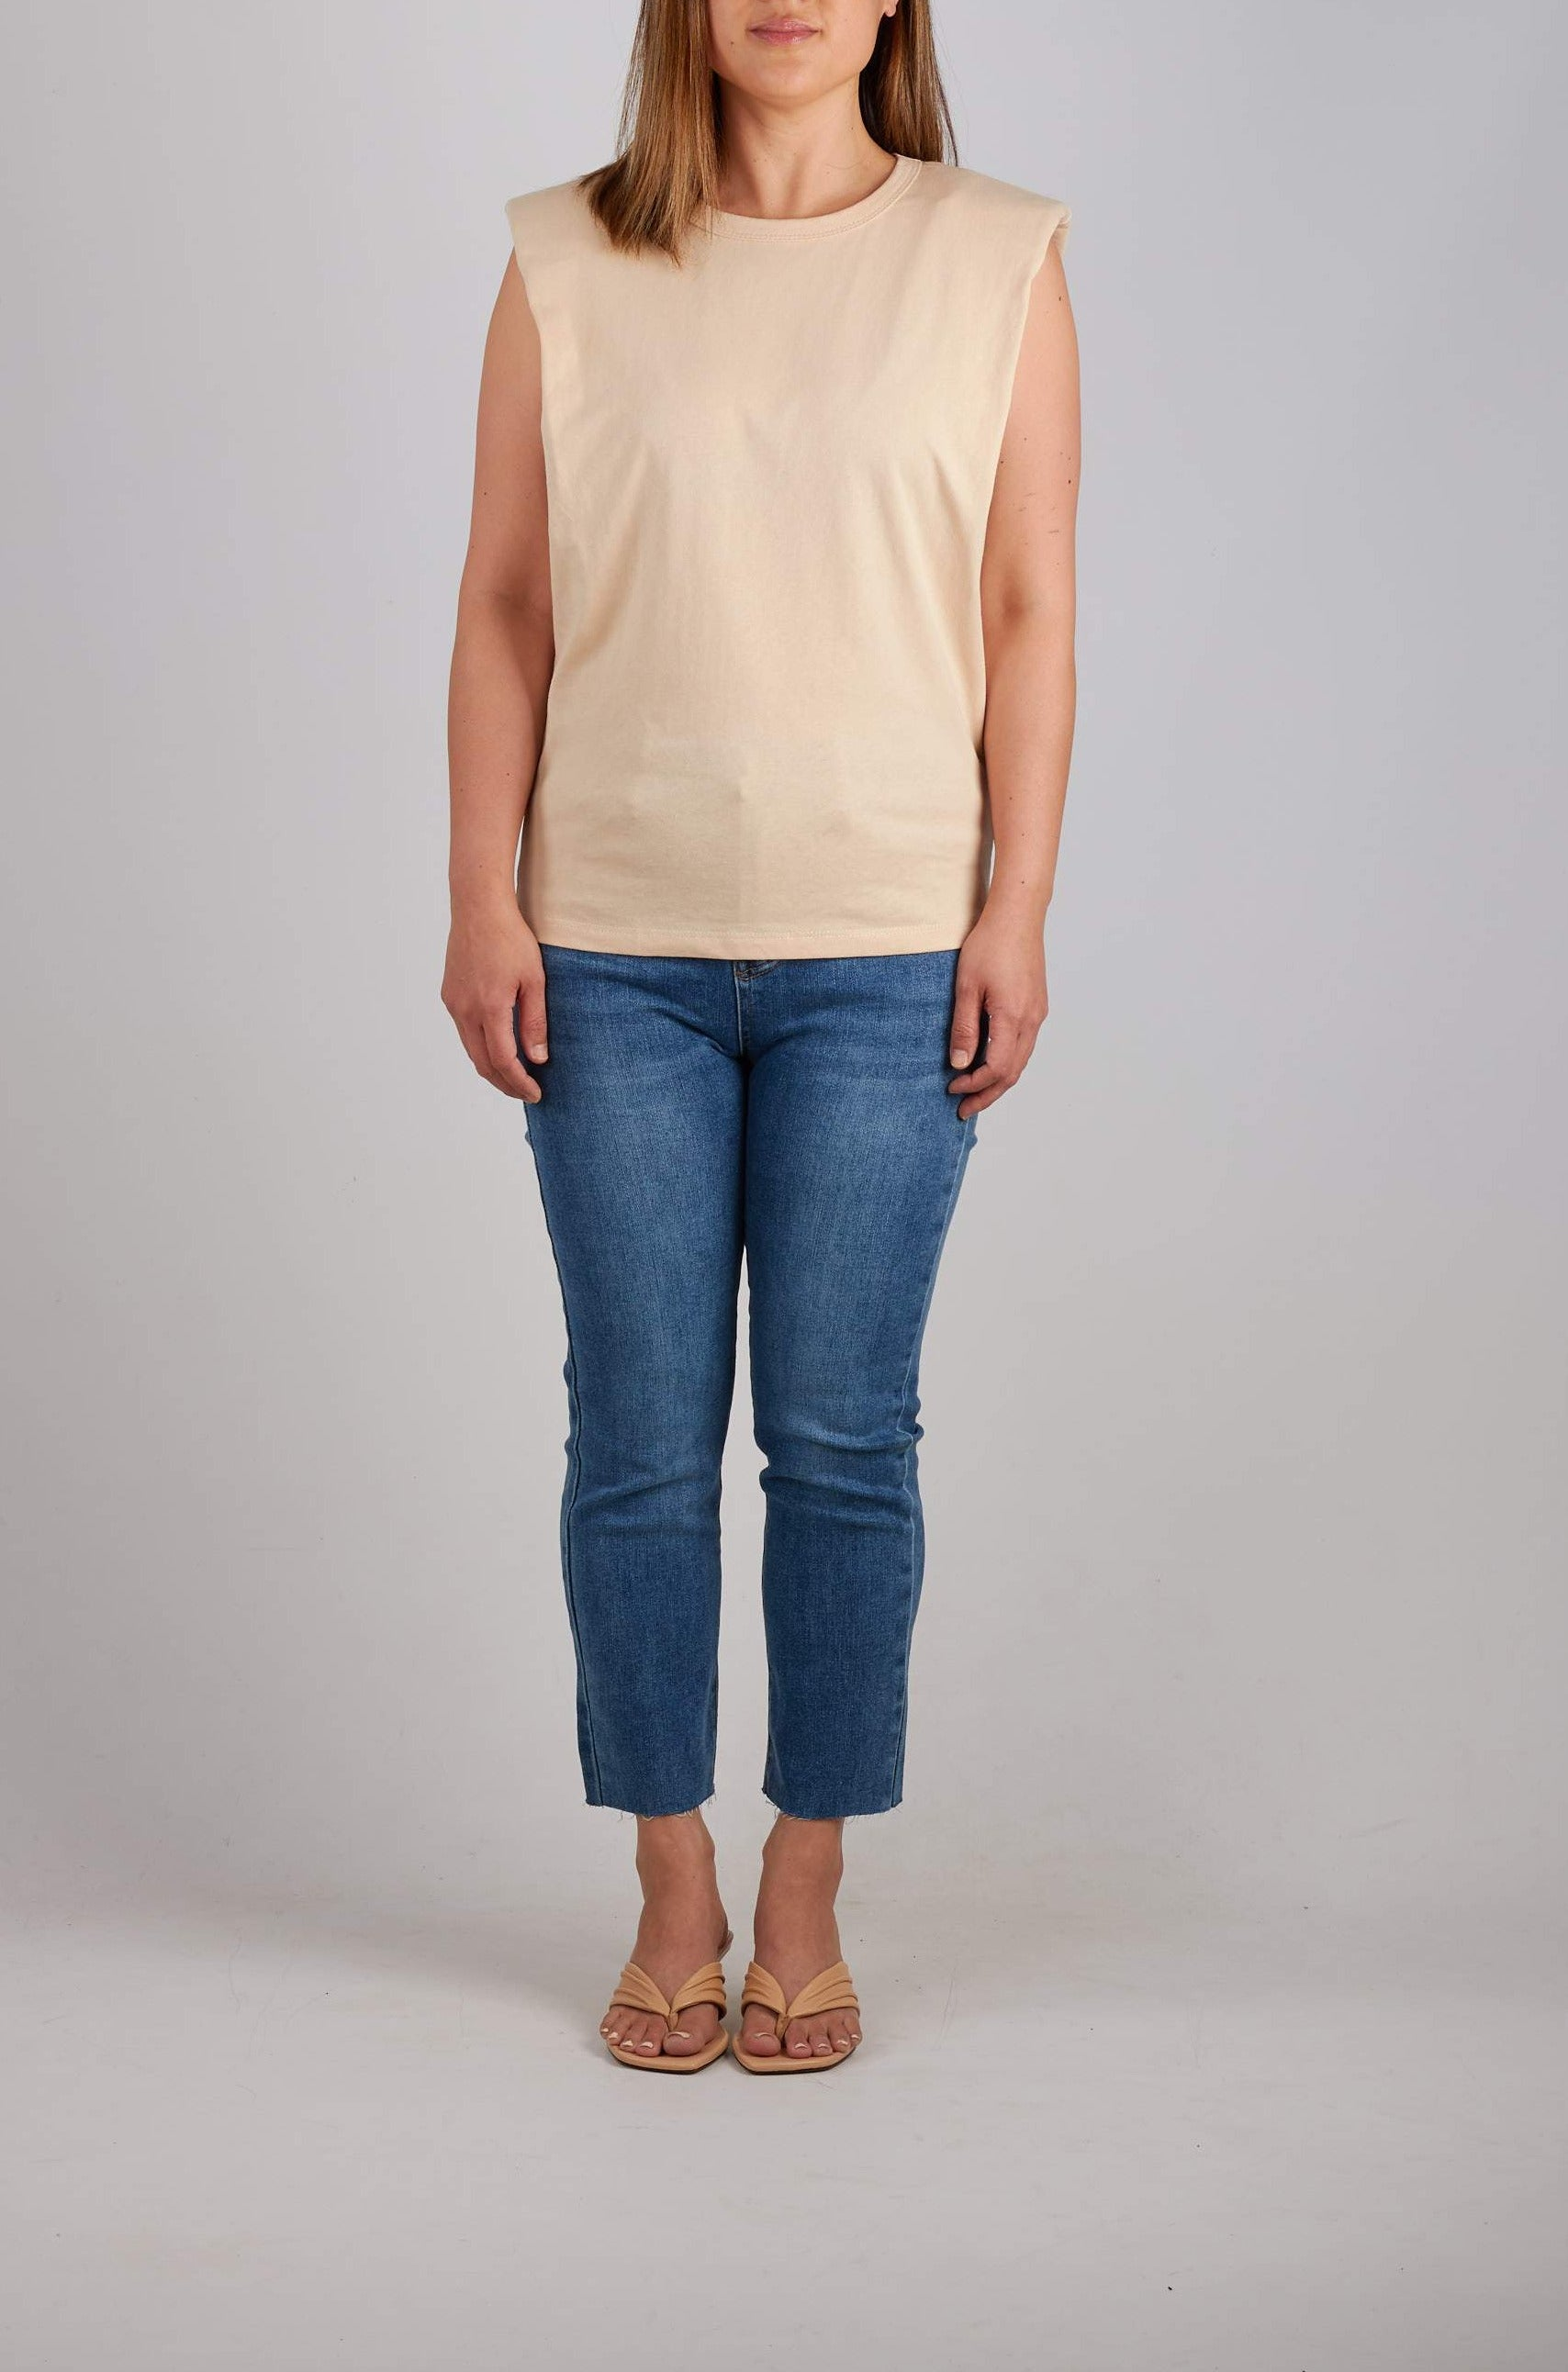 Padded shoulder sleeveless t-shirt in beige. Also available in White & Black.